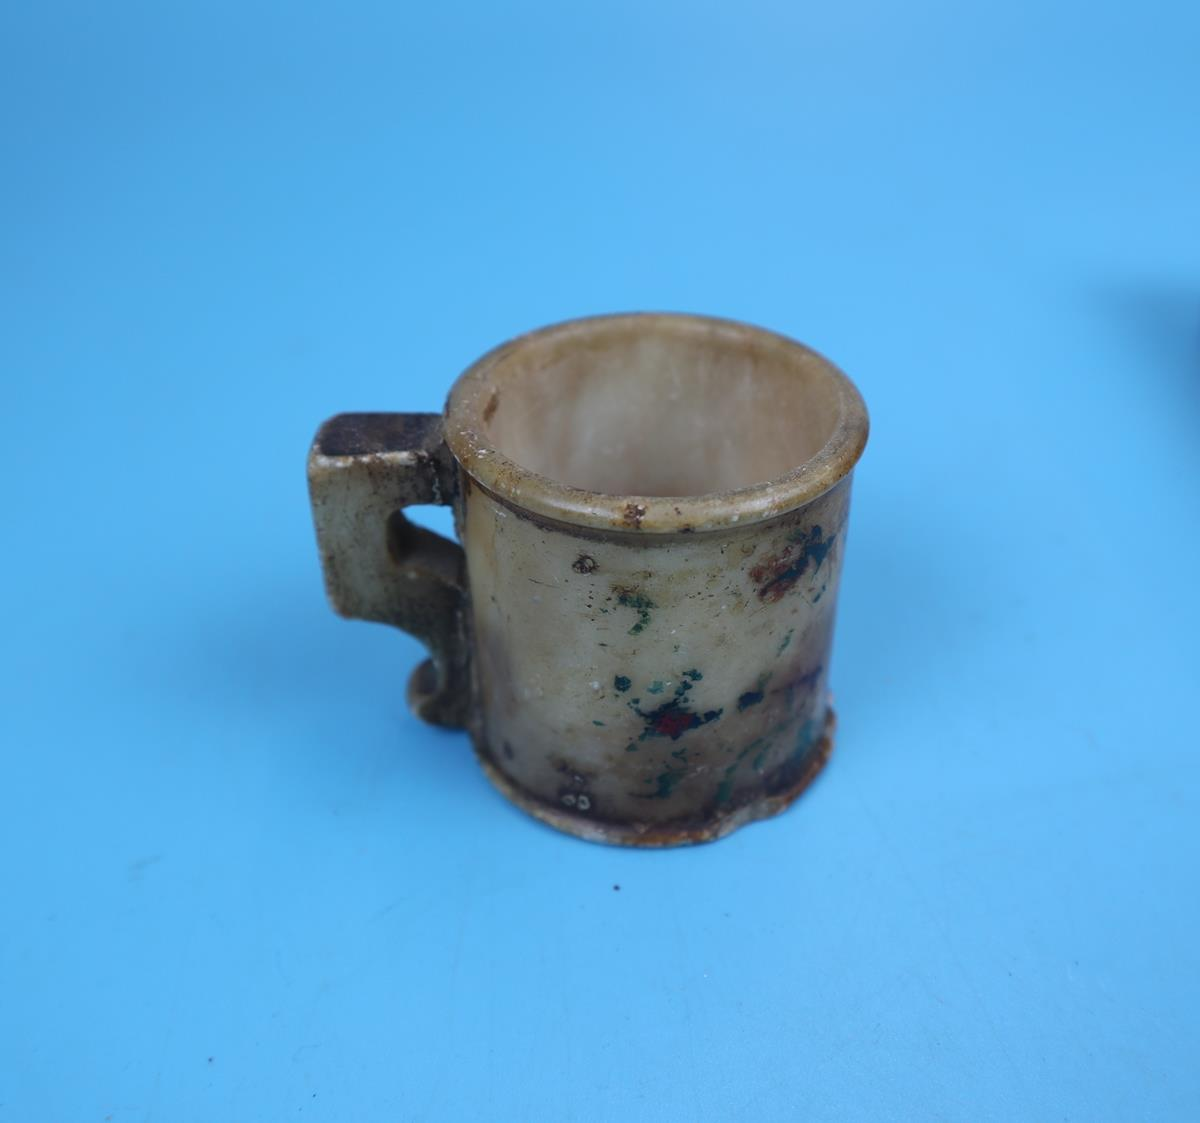 Collection of curios & collectables to include keys, postage scales etc - Image 4 of 11